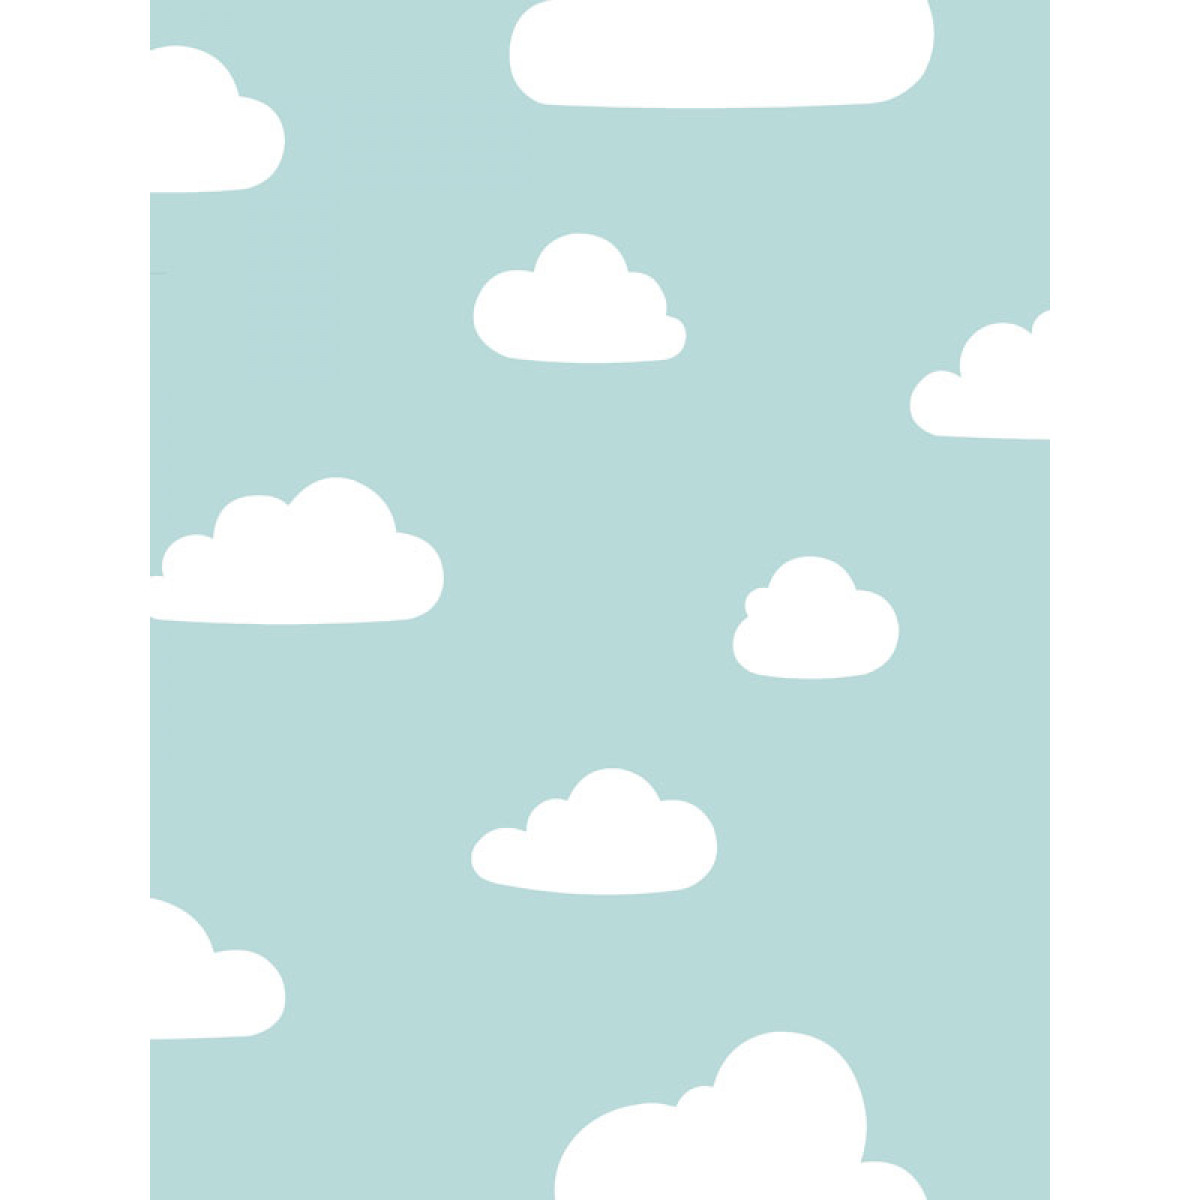 Clouds Wallpaper Soft Teal White World Of Wallpaper A618 Cao 6